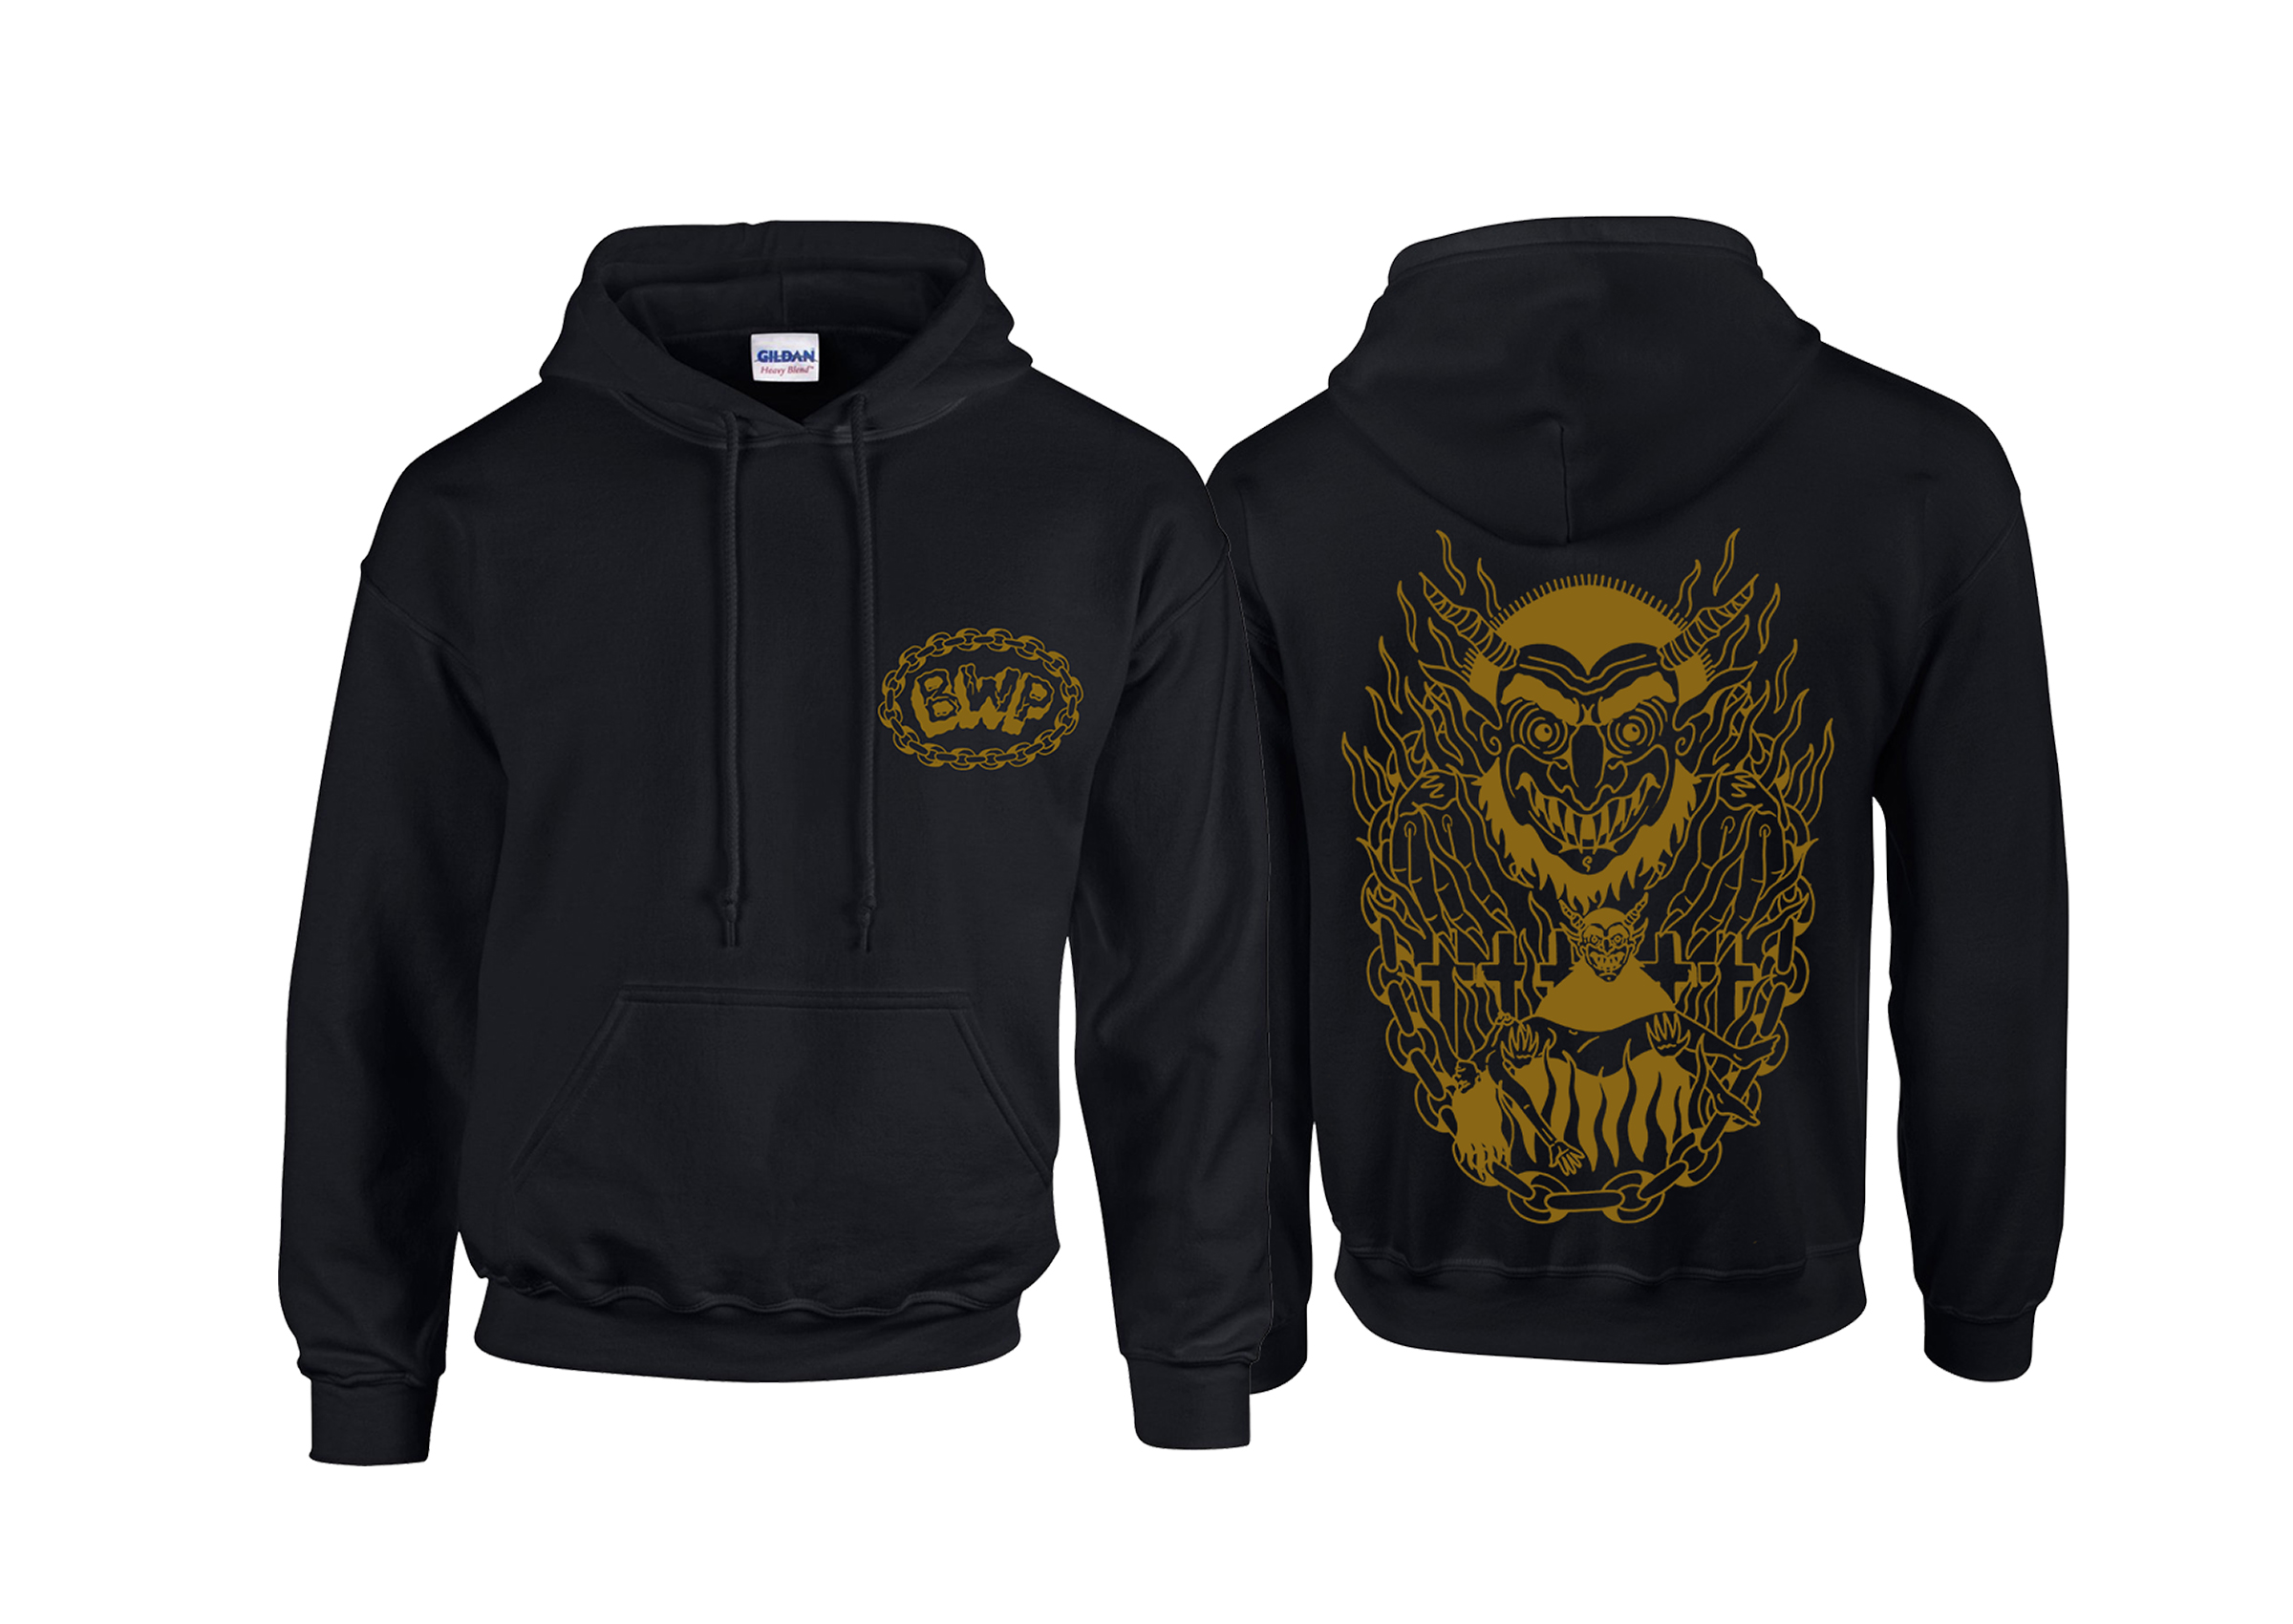 Brutality Will Prevail - In Dark Places hoodie